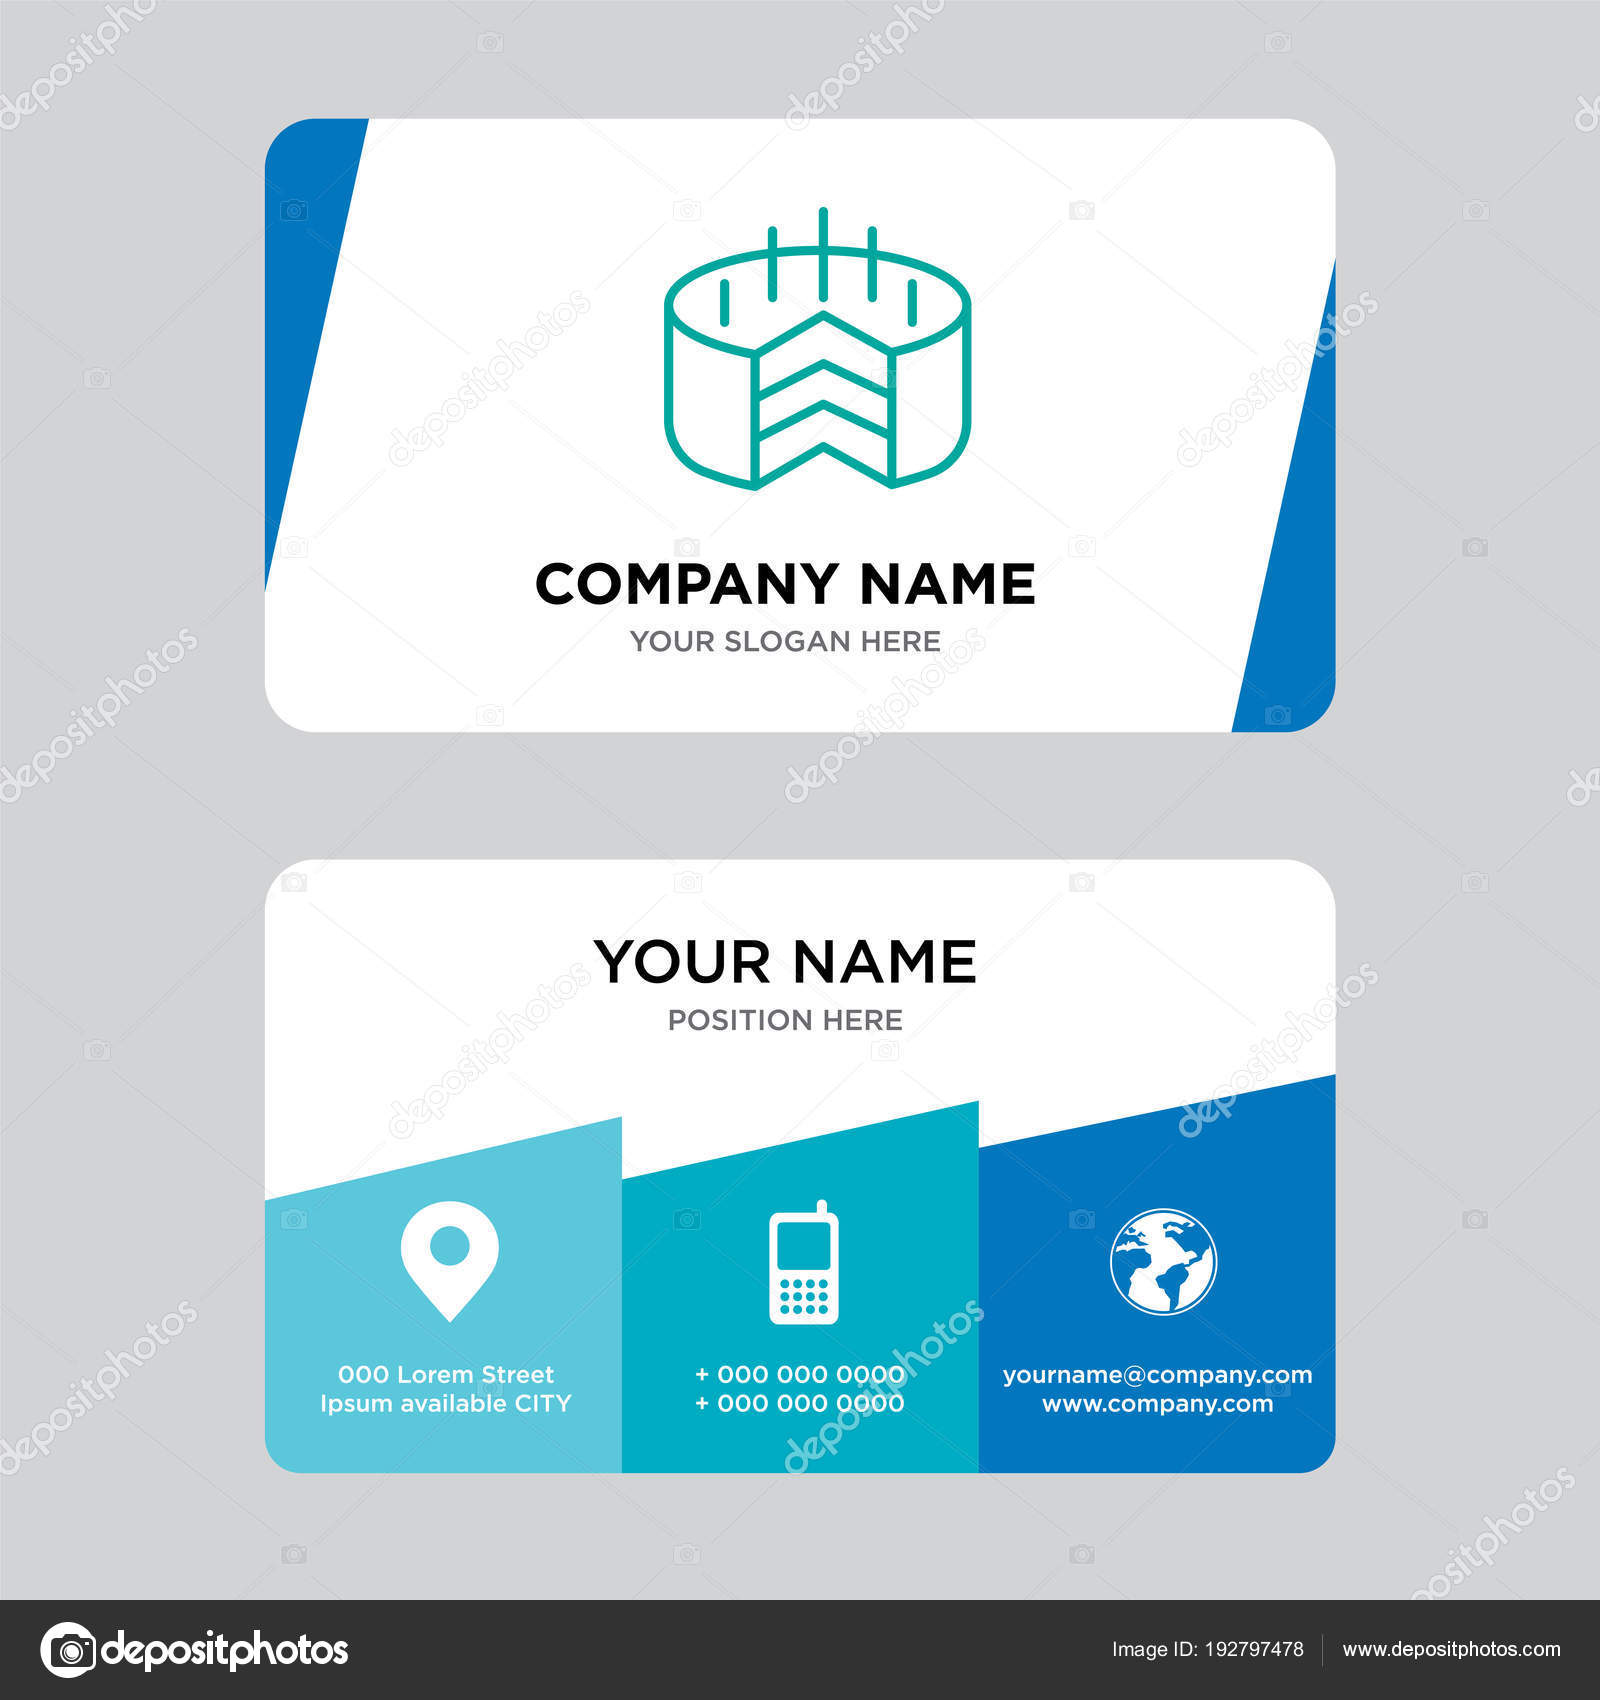 Folder connected circuit business card design template stock folder connected circuit business card design template stock vector colourmoves